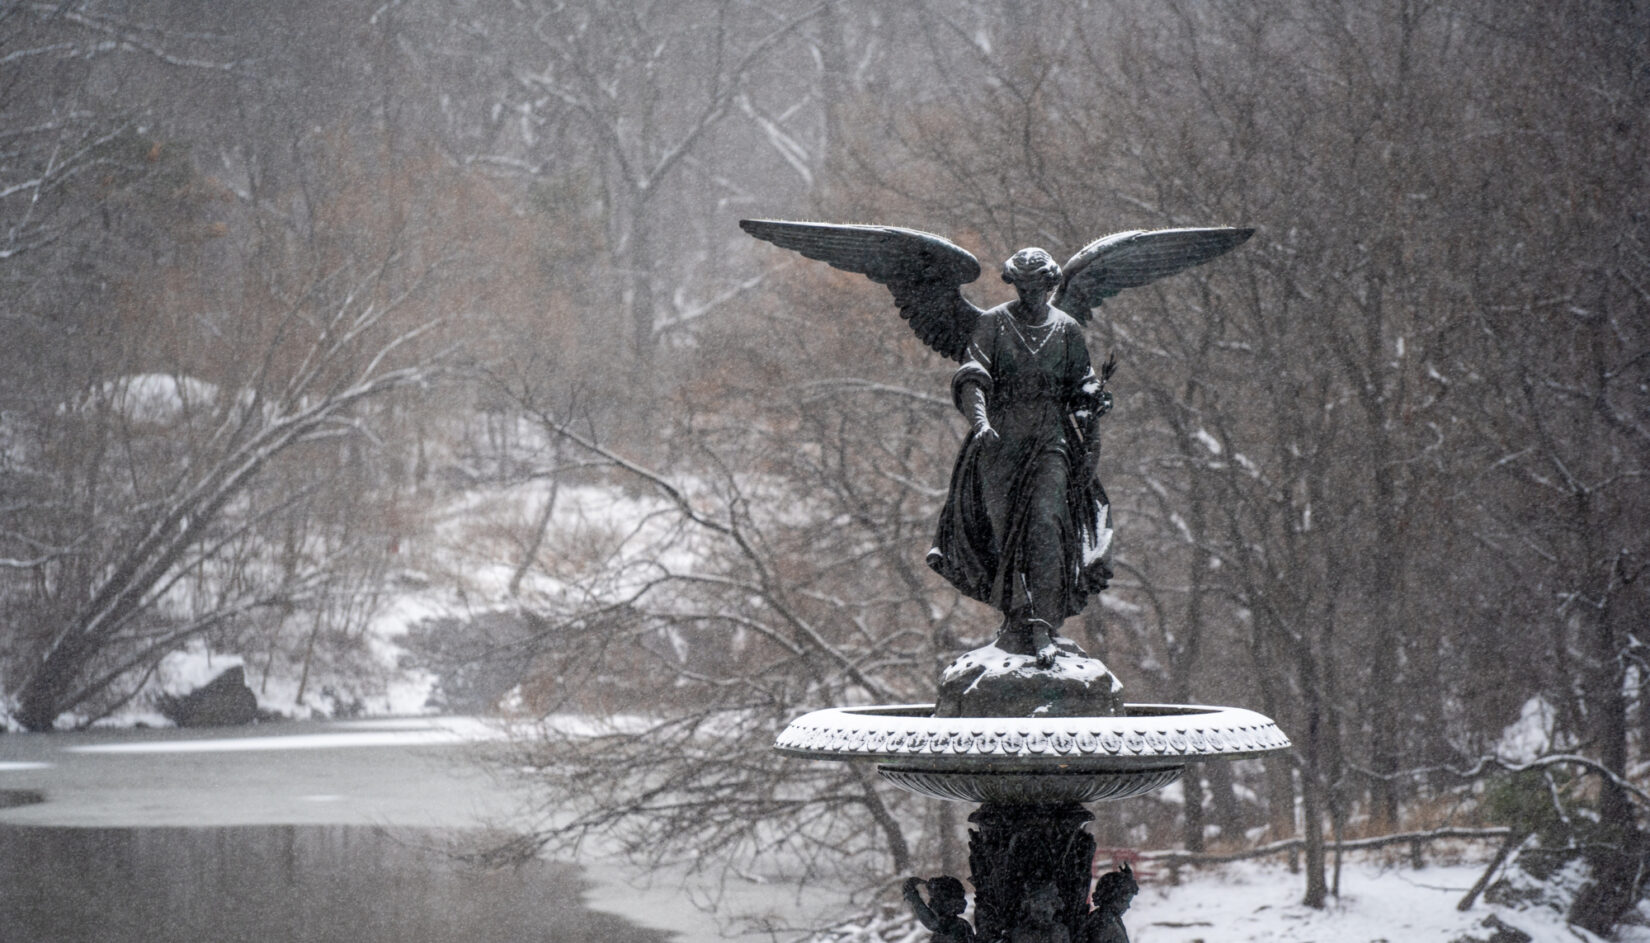 The fountain at Bethesda Terrace, dusted with snow, with the wintery Lake in the background.